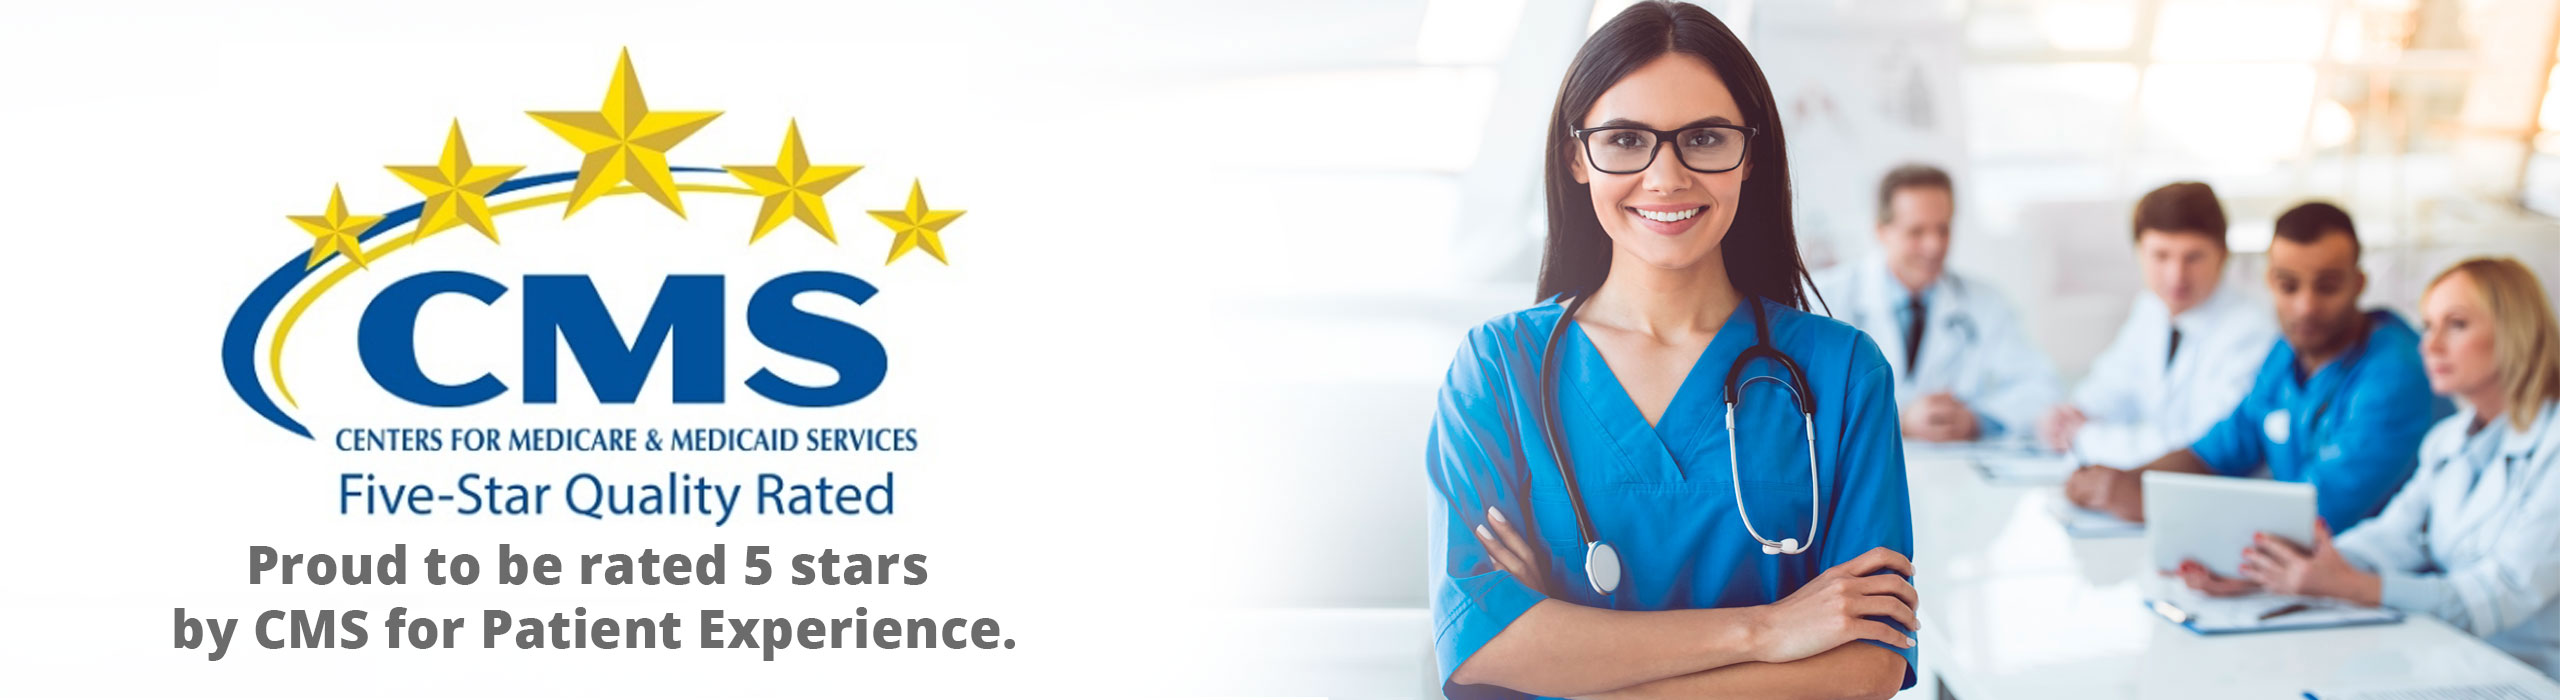 CMS Centers for Medicare & Medicaid services. Five star Quality rated. Proud to be rated 5 stars by CMS for Patient Experience.